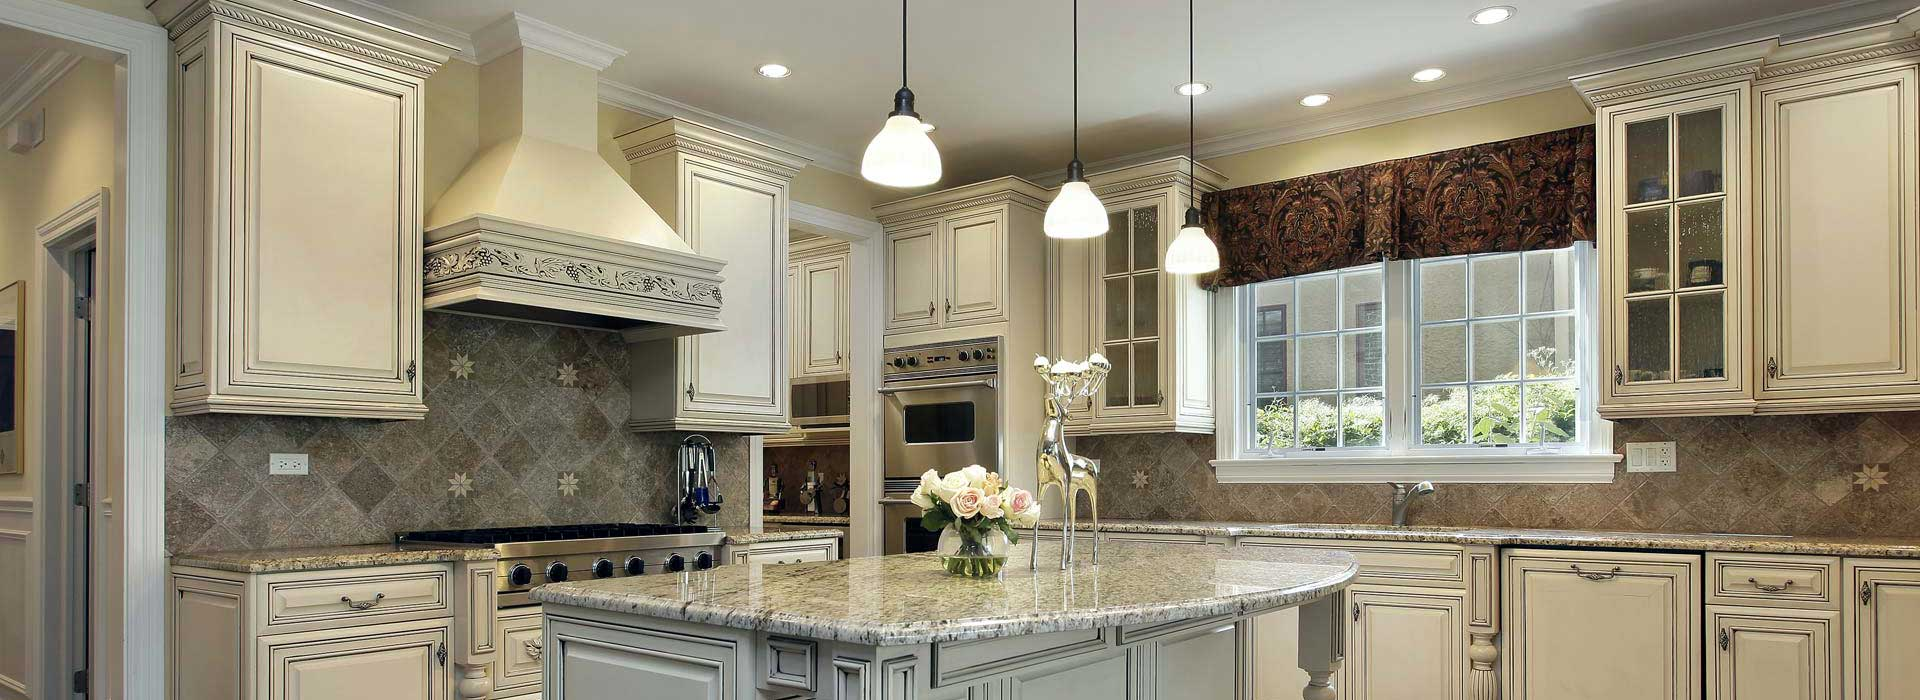 kitchen cabinet reface virtual designer free refacing new look ny